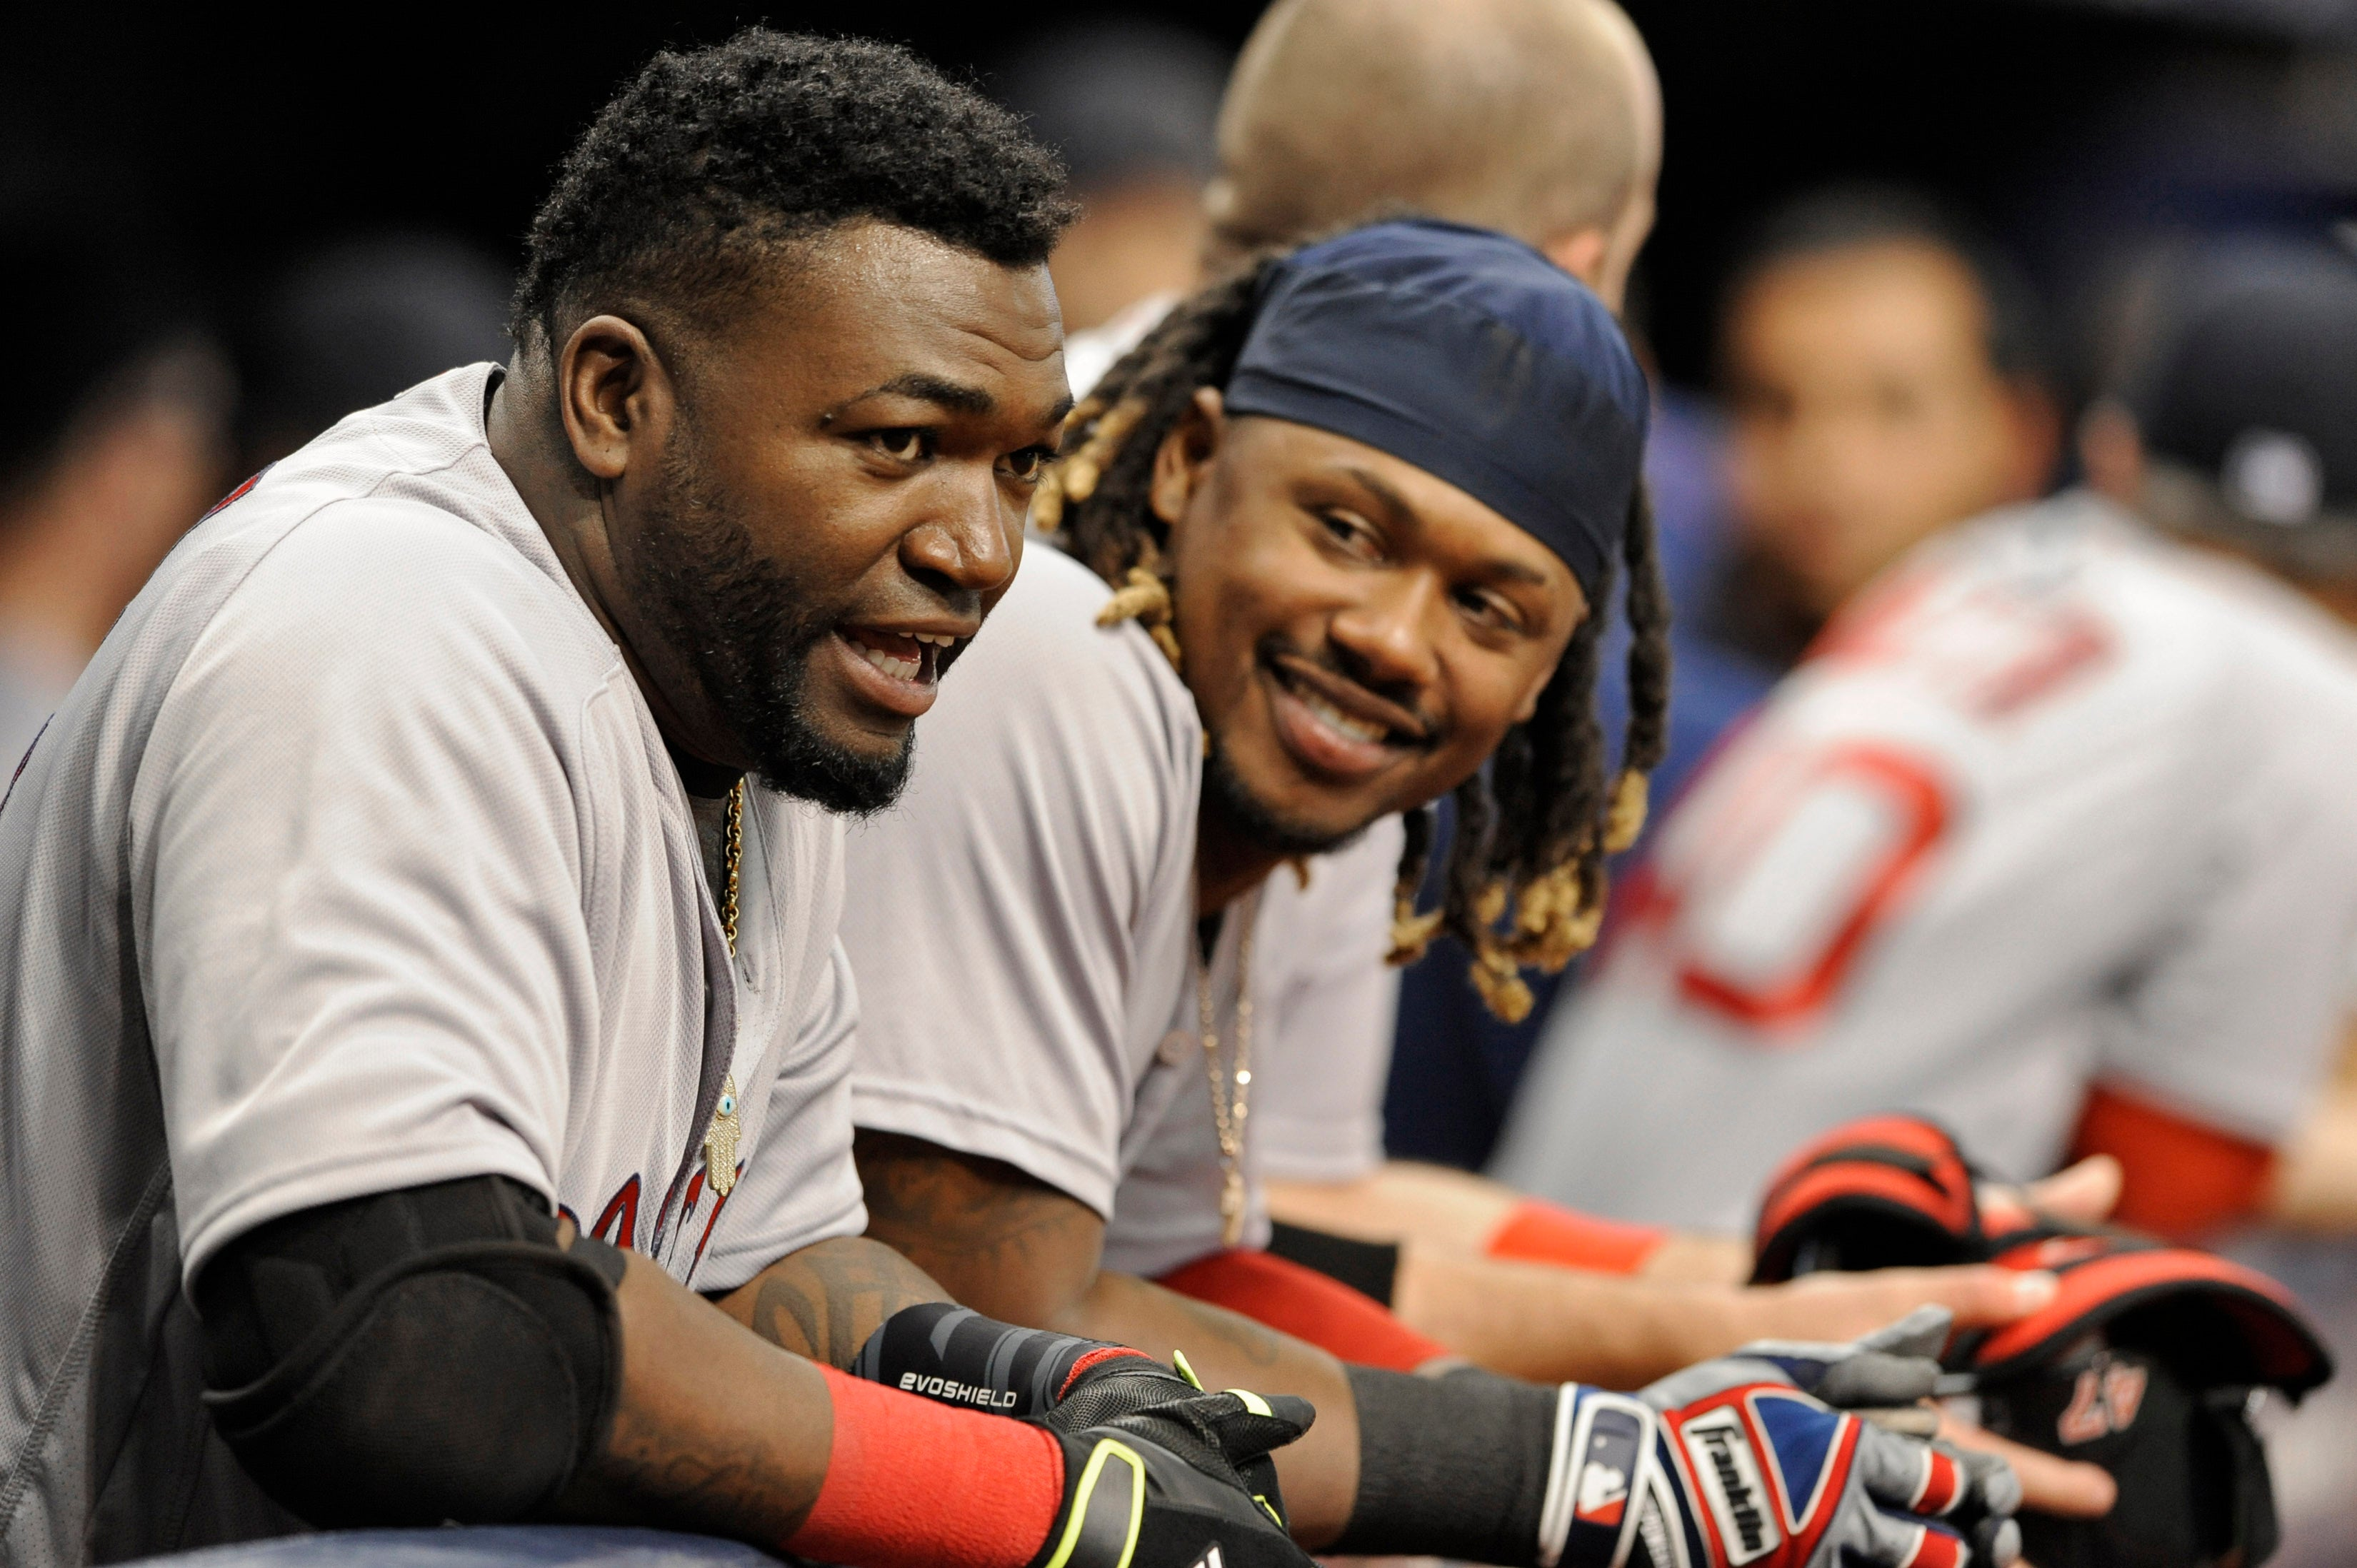 David Ortiz, left, and Hanley Ramirez talk in the Red Sox dugout during a game against the Rays.